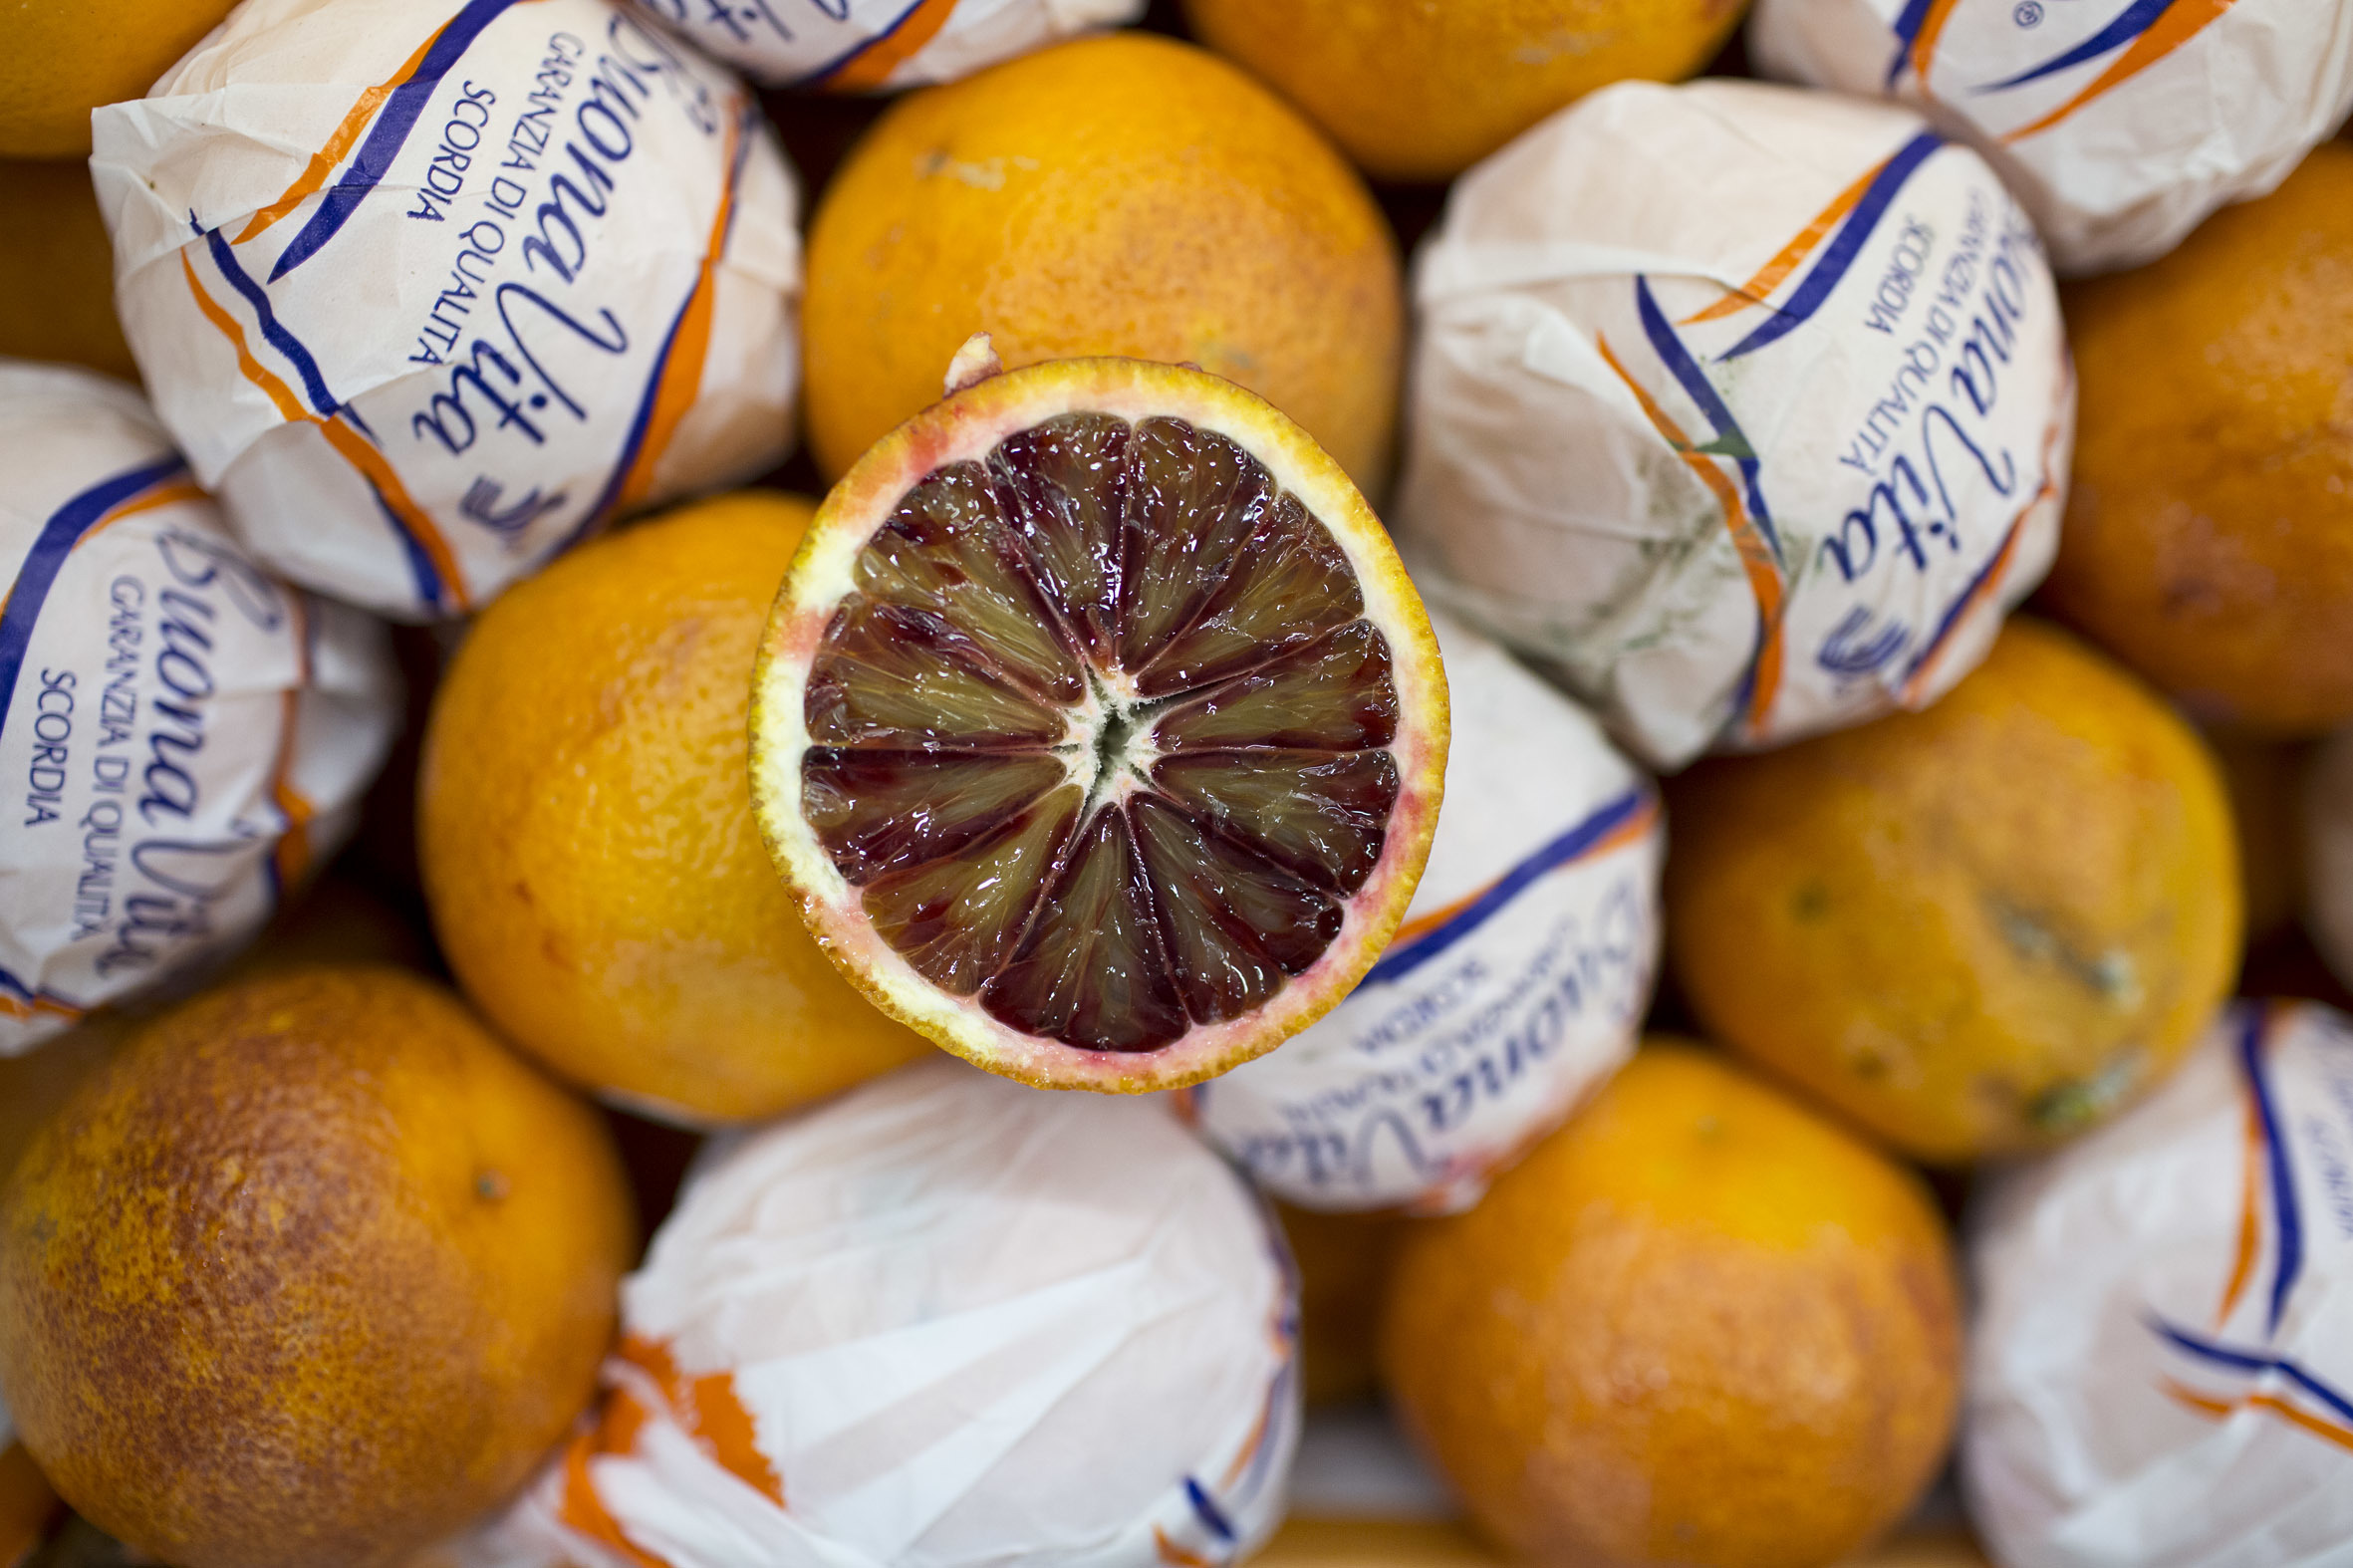 fruit-and-vegetable-market-report-march-2014-moro-blood-orange.jpg?mtime=20170922112639#asset:11329